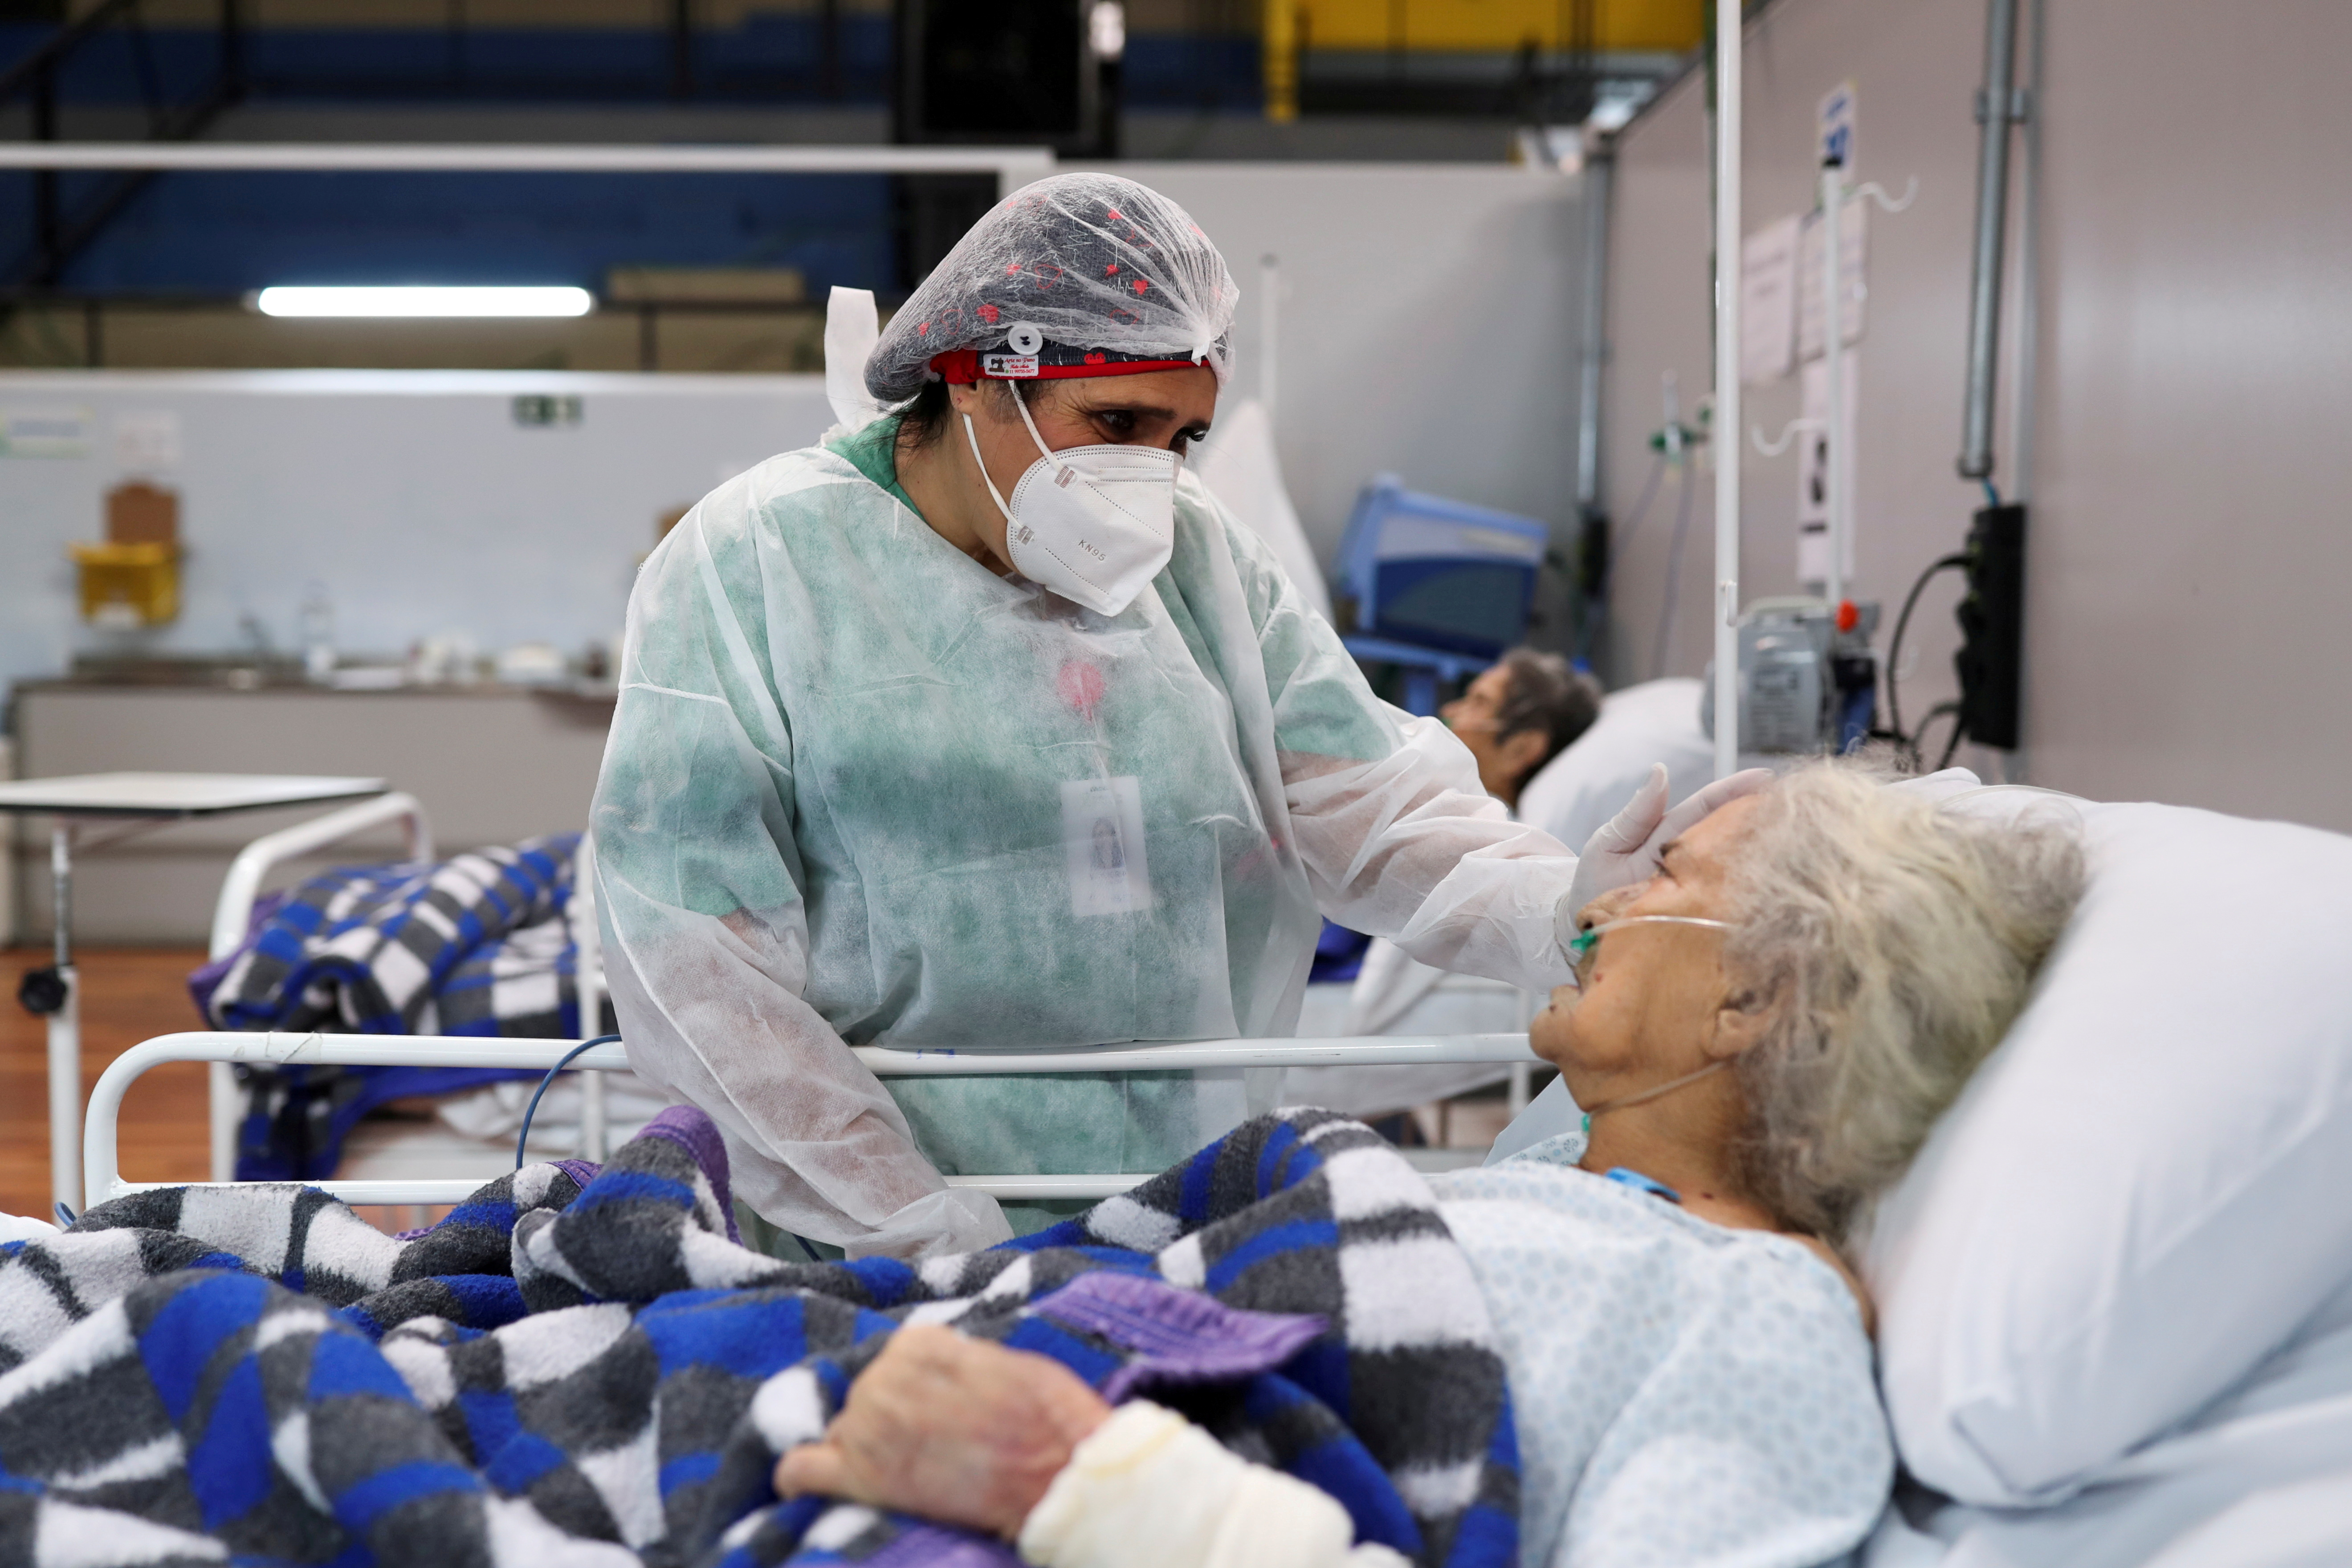 Nurse Walkiria Ribeiro speaks to Joana Maria Rodrigues, 80, as she works during the New Year at a field hospital set up at a sports gym to treat patients suffering with the coronavirus disease (COVID-19) in Santo Andre, Sao Paulo state, Brazil, January 1, 2021. REUTERS/Amanda Perobelli/File Photo